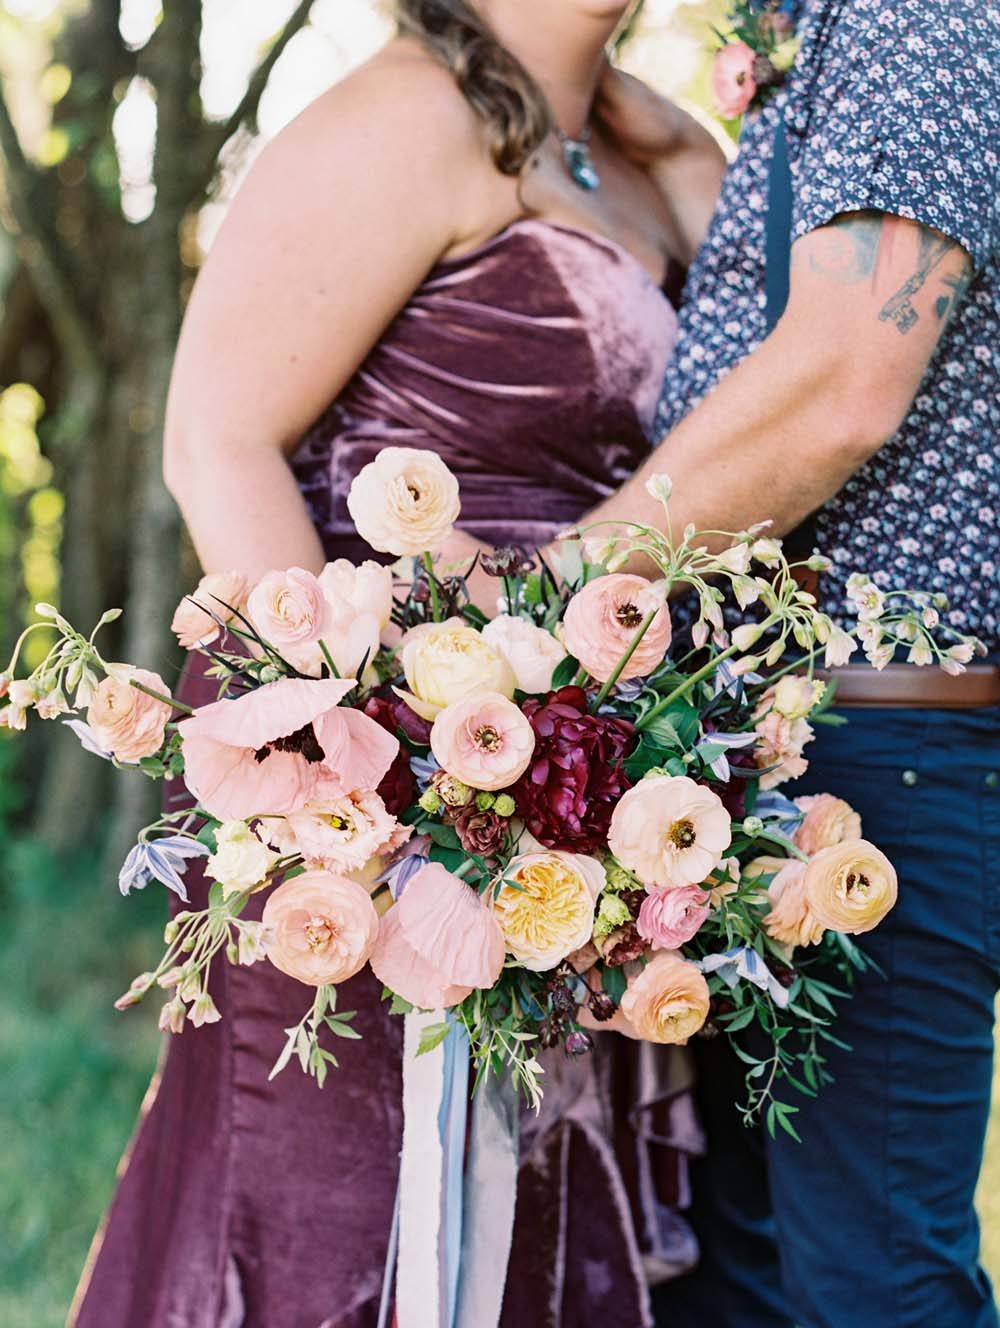 A Quirky Non-Traditional Wedding in Kitchener, Ontario - Bouquet